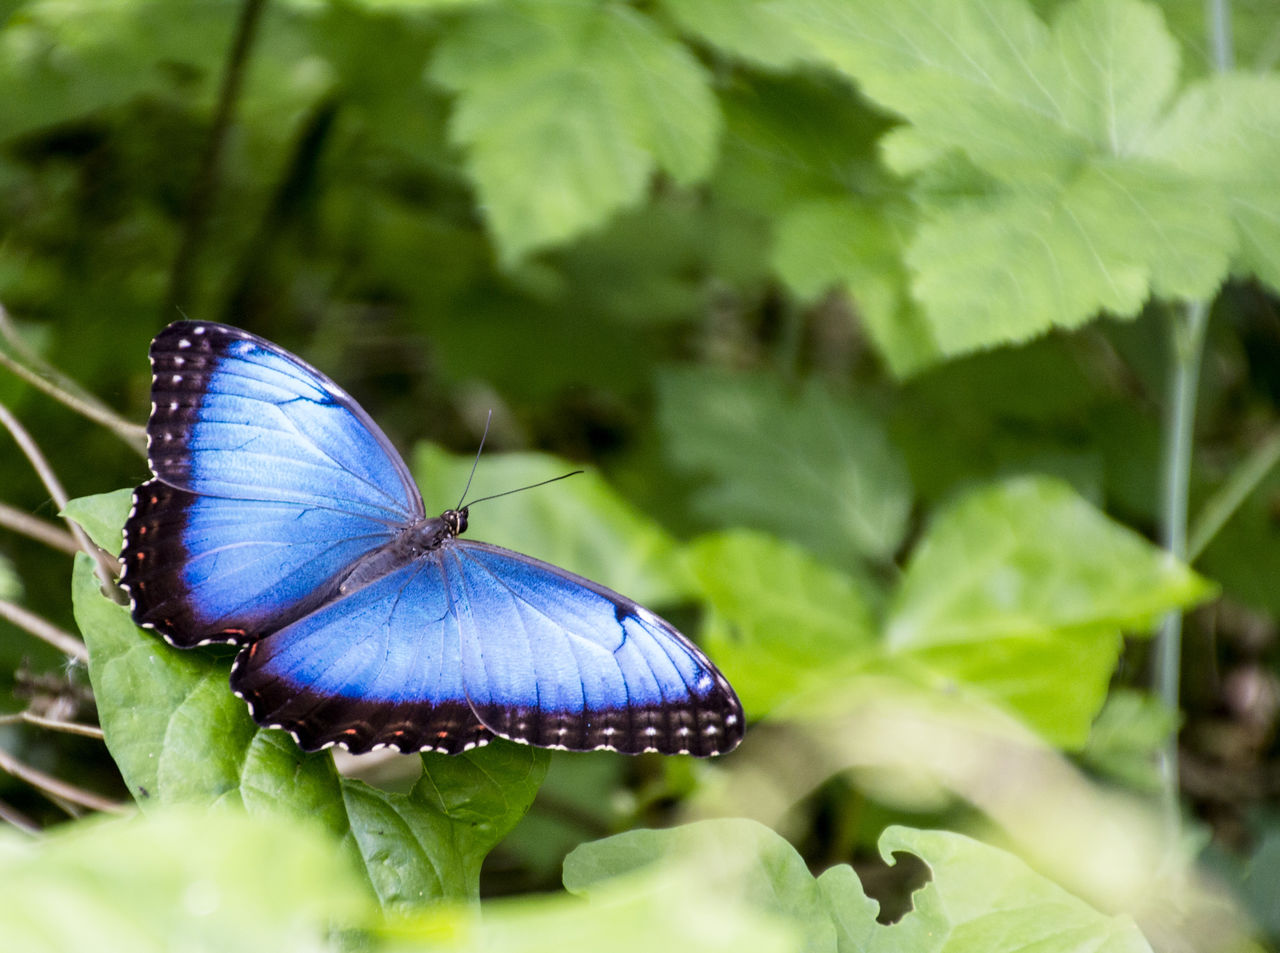 insect, animal themes, animals in the wild, one animal, butterfly - insect, leaf, nature, butterfly, close-up, green color, plant, beauty in nature, blue, no people, outdoors, day, animal wildlife, fragility